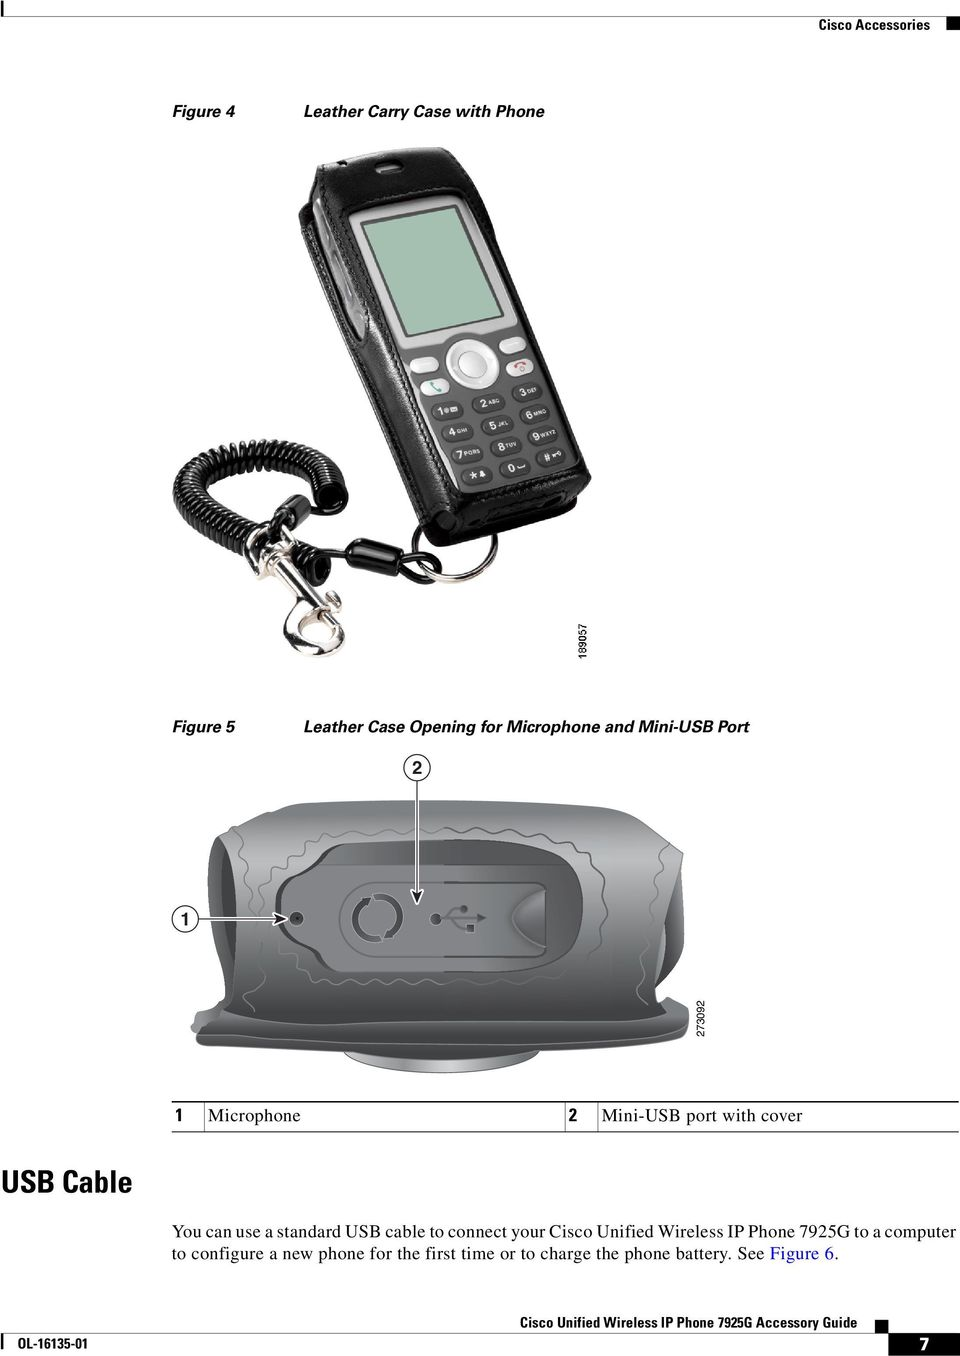 can use a standard USB cable to connect your Cisco Unified Wireless IP Phone 7925G to a